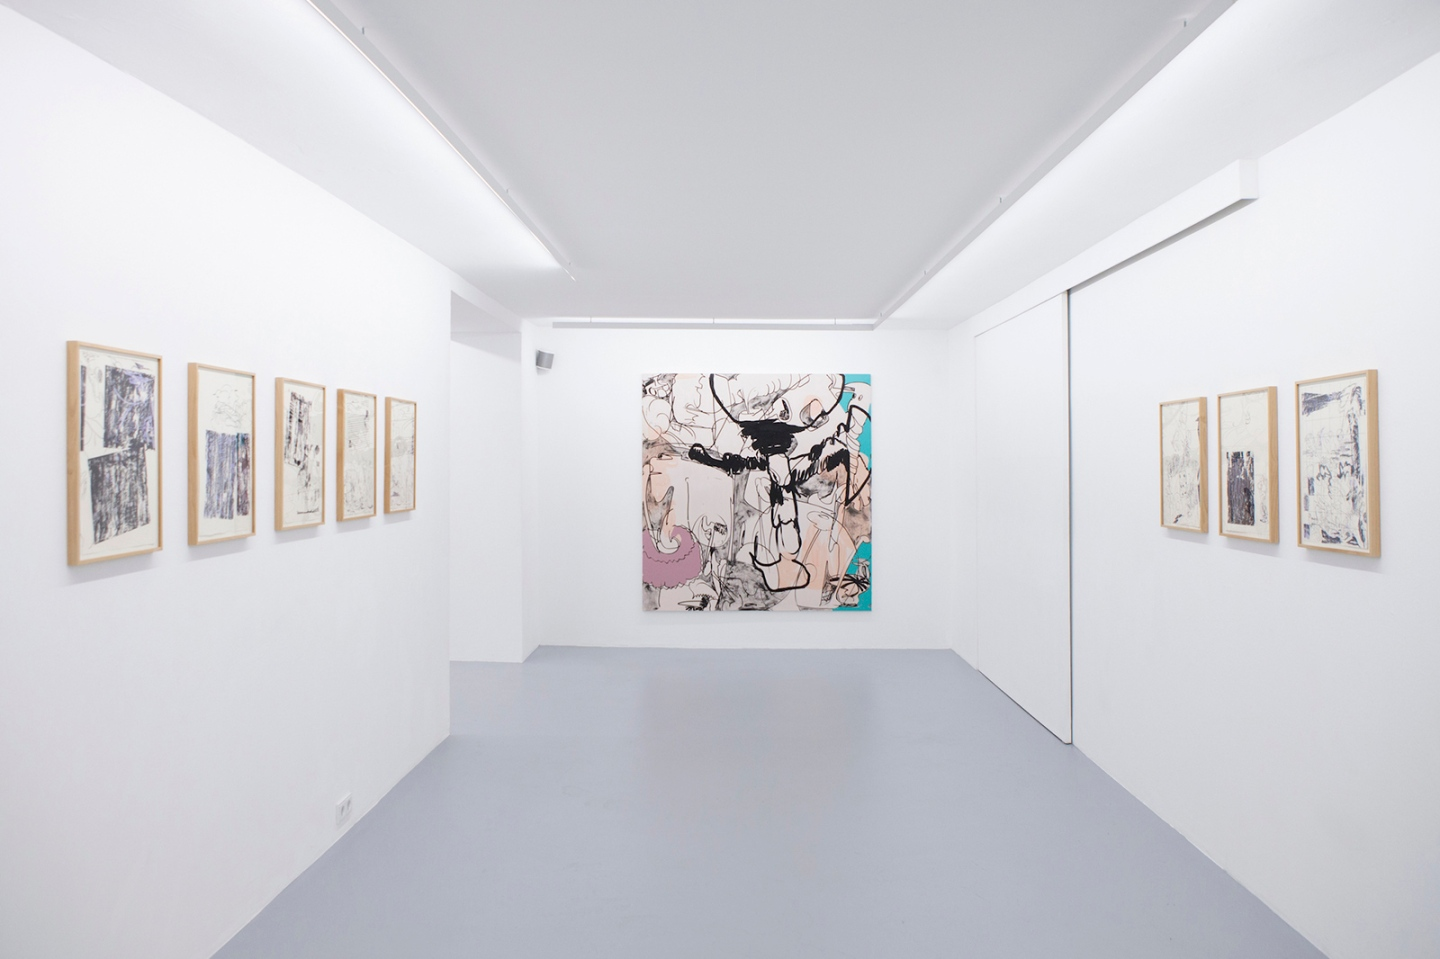 the-fourth-walls-art-exhibition-review-antwan-horfee-sorry-bro-ruttkowski68-gallery-cologne-germany8